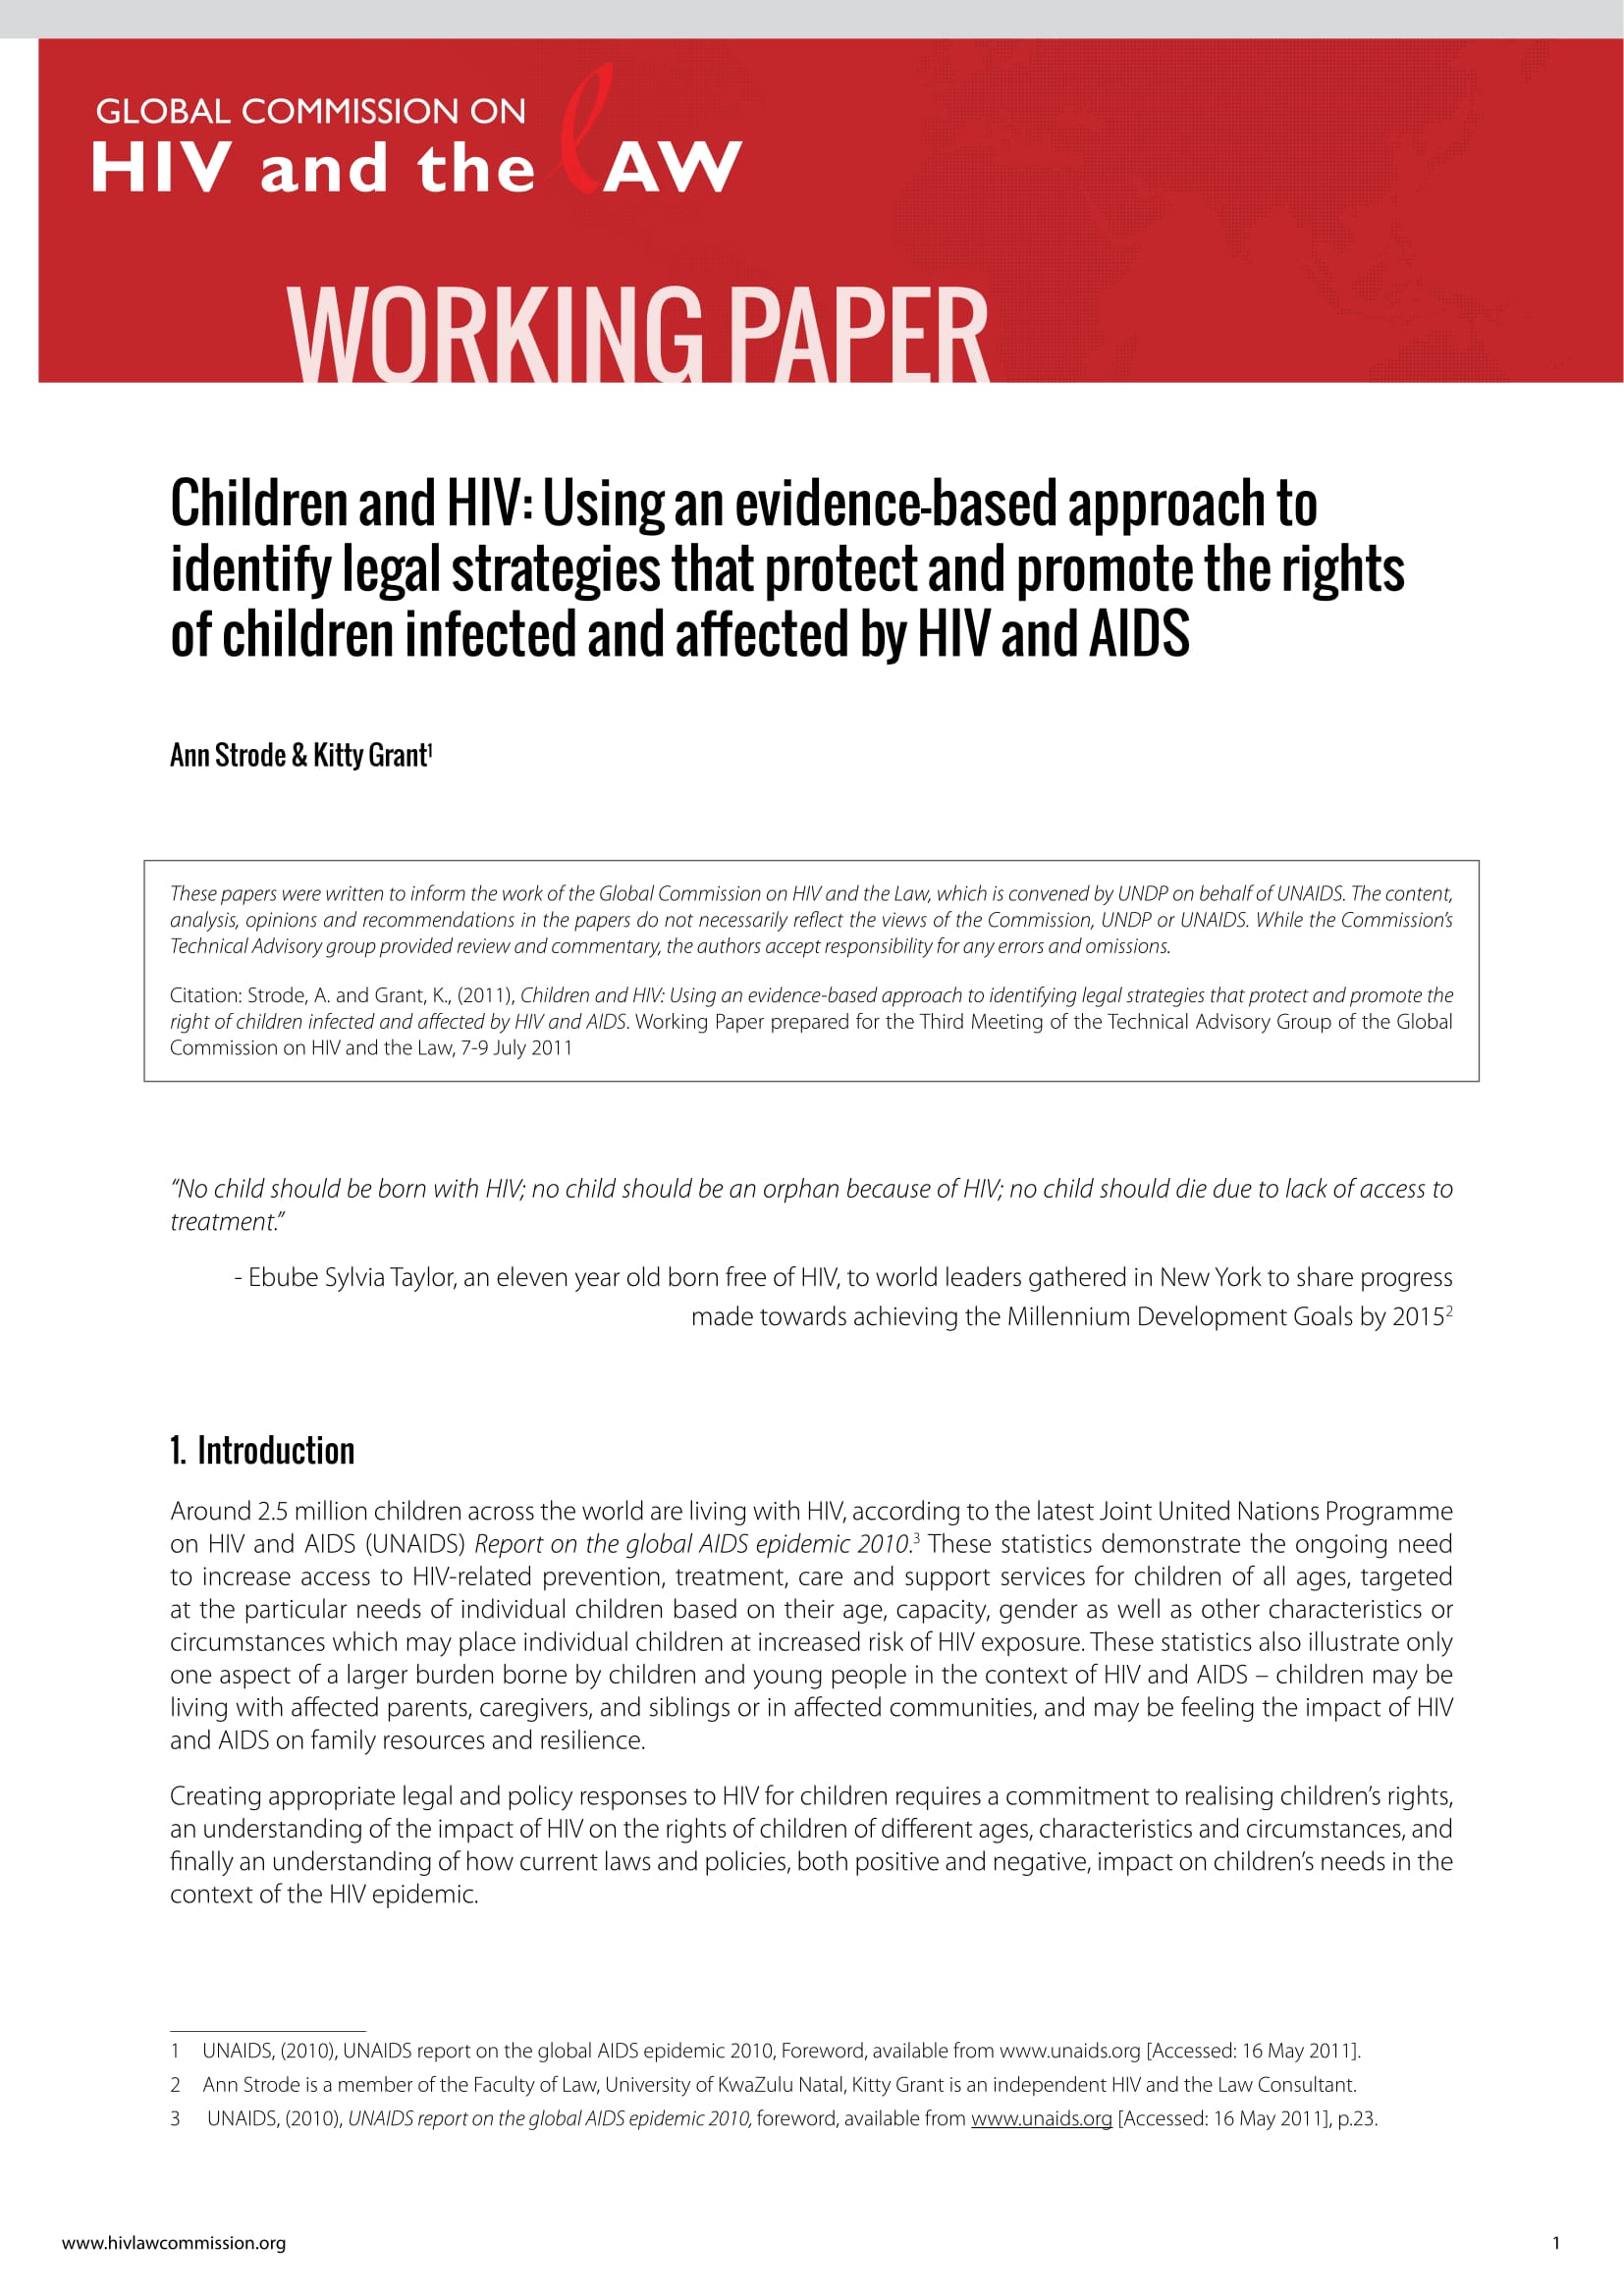 Children and HIV: Using an evidence-based approach to identify legal strategies that protect and promote the rights of children infected and affected by HIV and AIDS